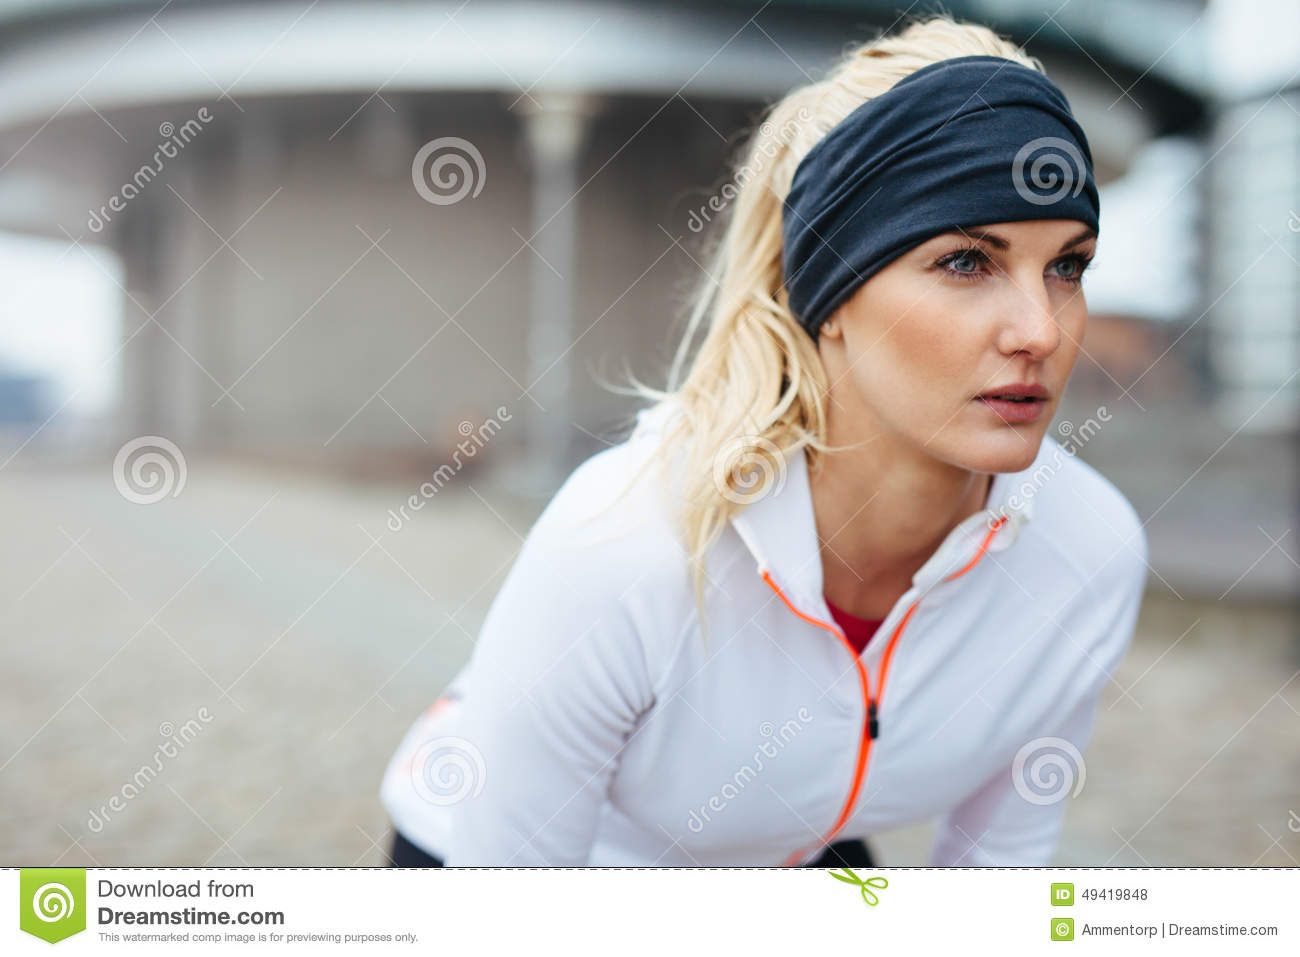 Motivated and focused sporty woman